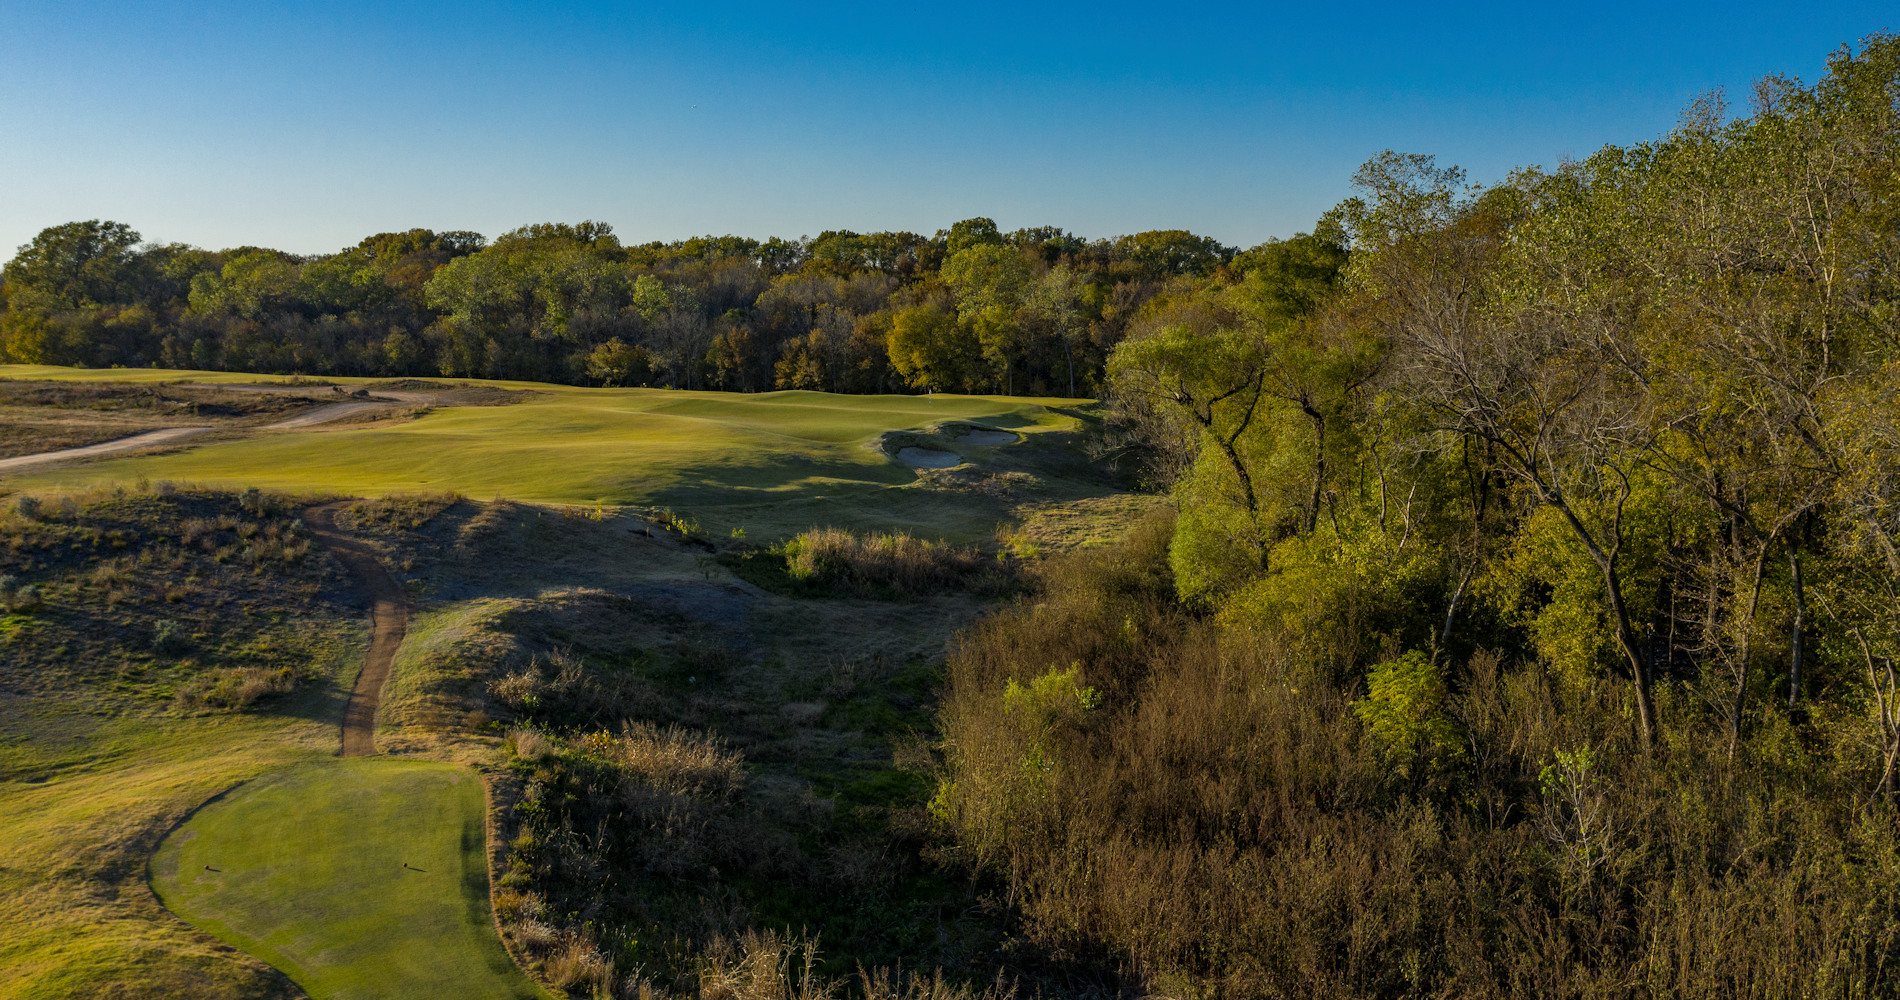 Trinity Forest Golf Club|Home of the AT&T Byron Nelson